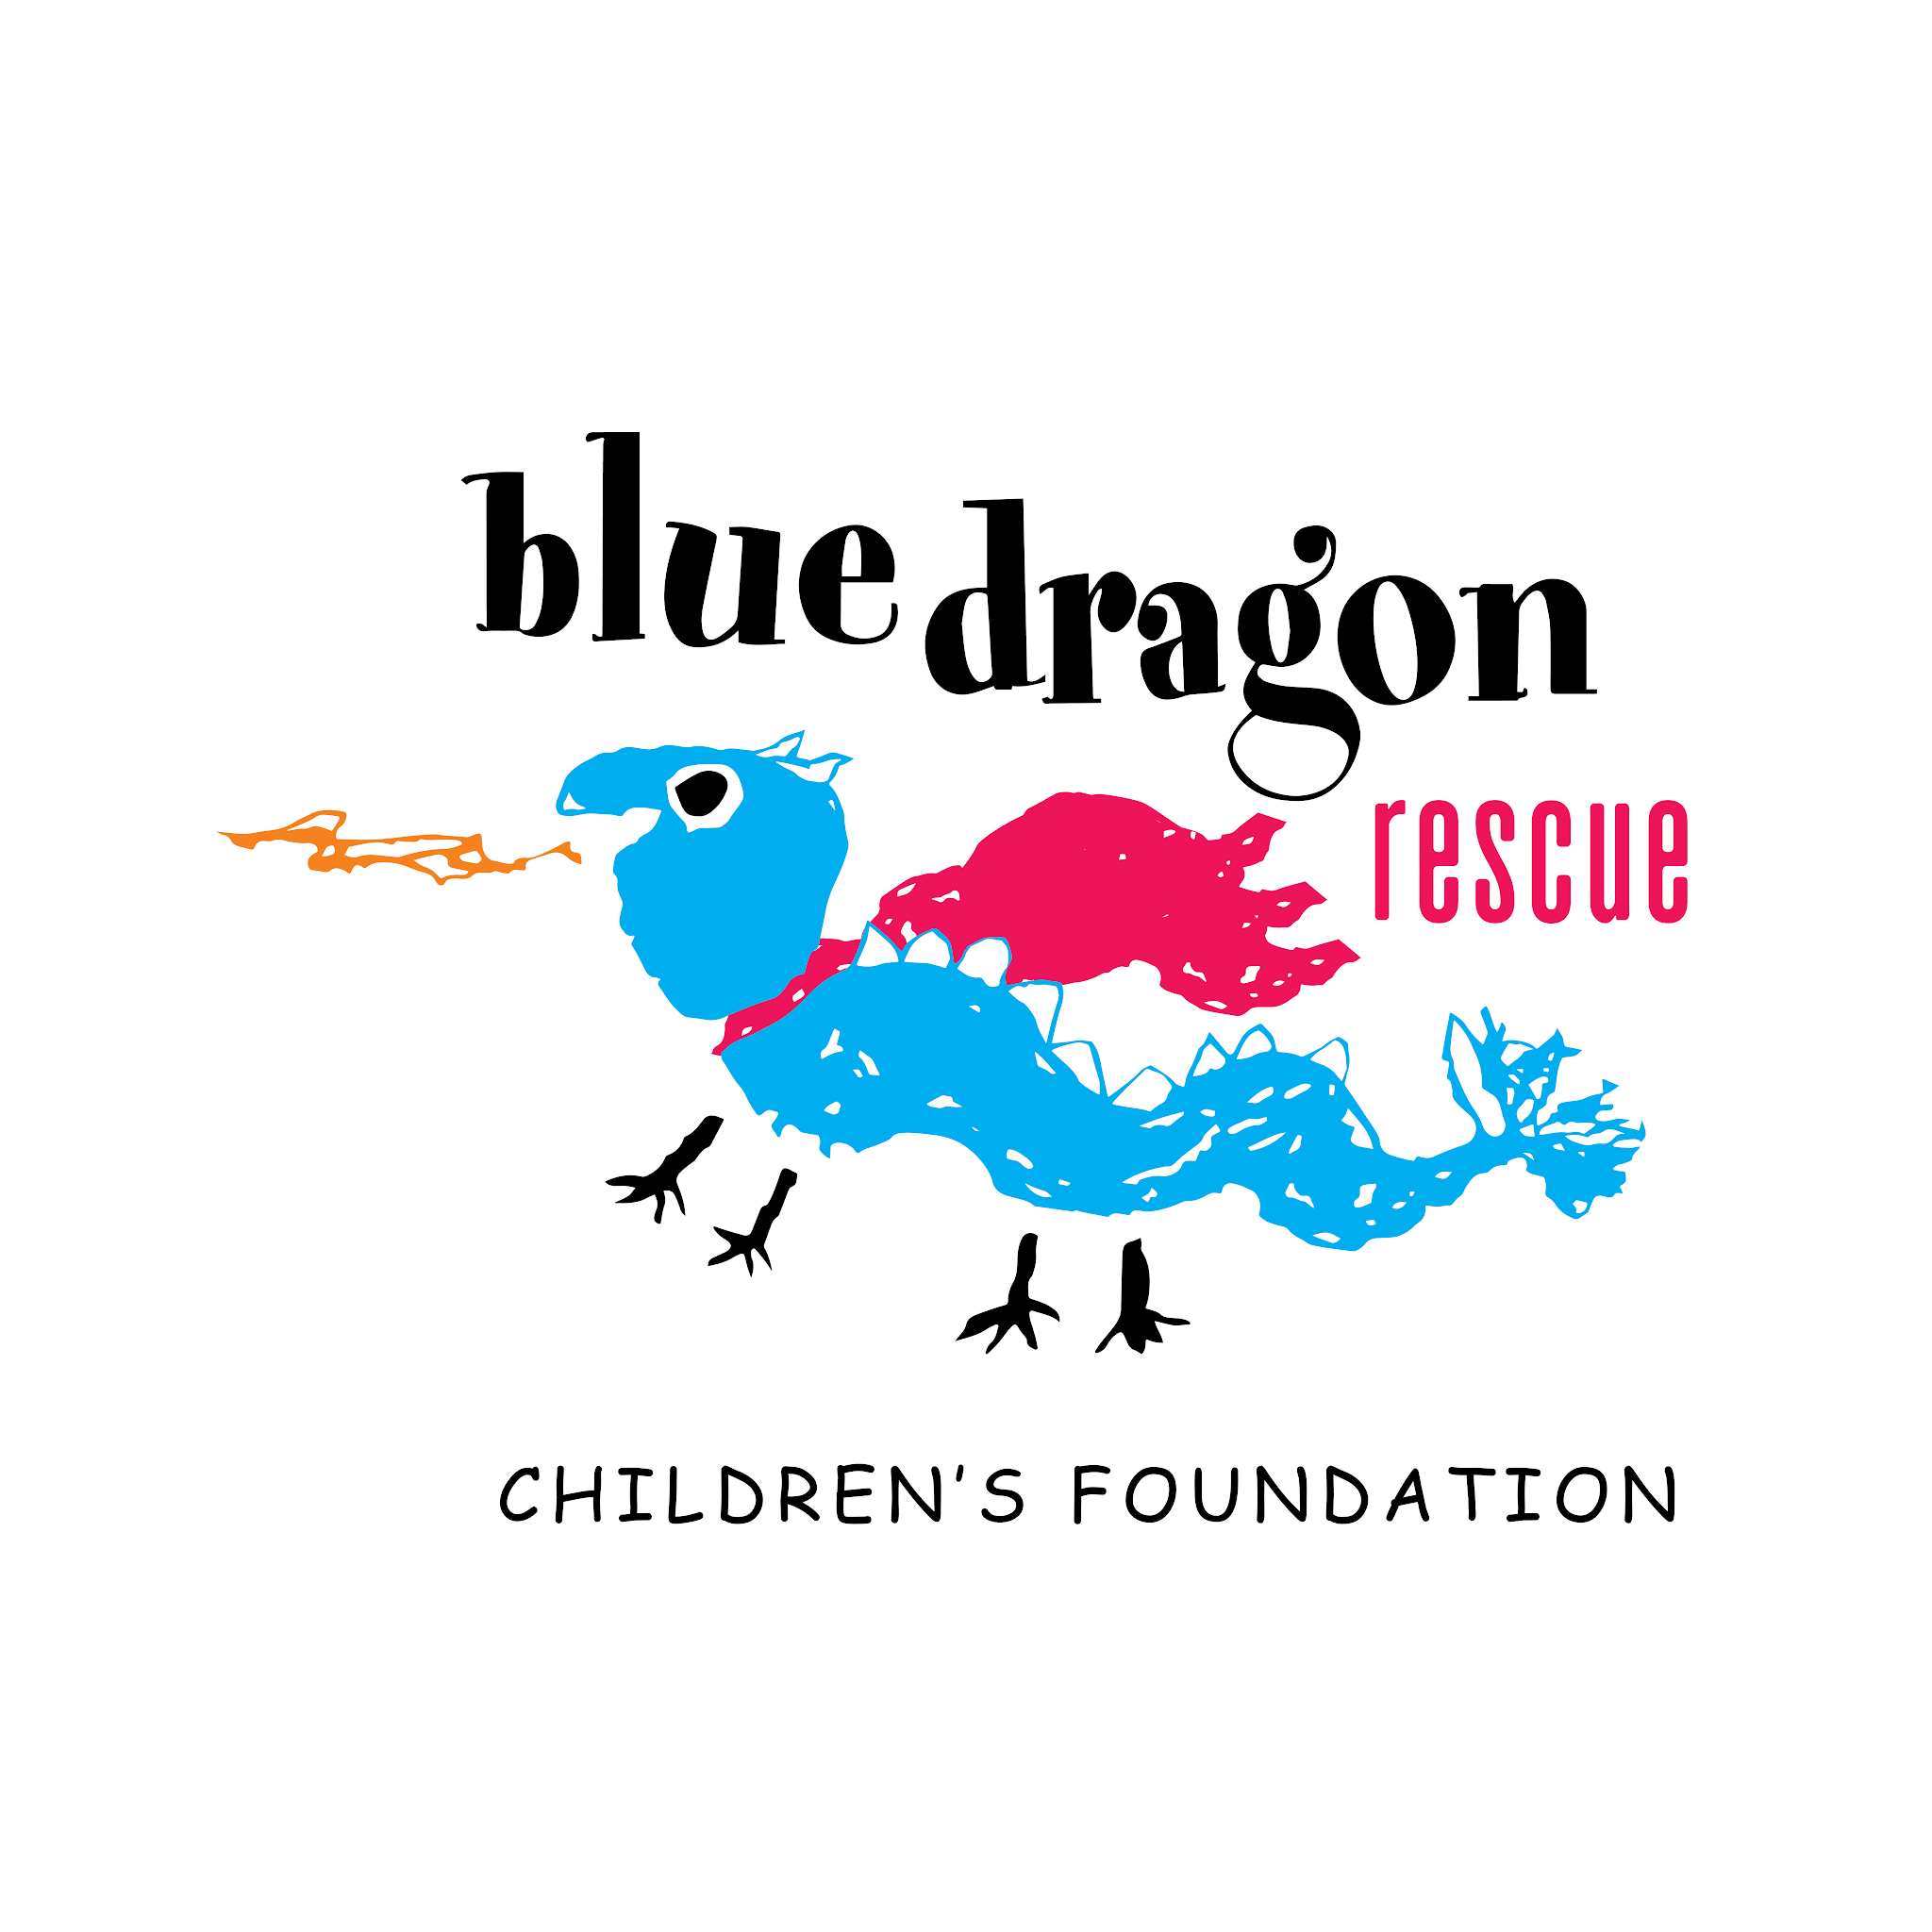 Rescue children in crisis - Blue Dragon Rescue Appeal 2019 by BLUE DRAGON CHILDRENS FOUNDATION UK fundraising photo 1